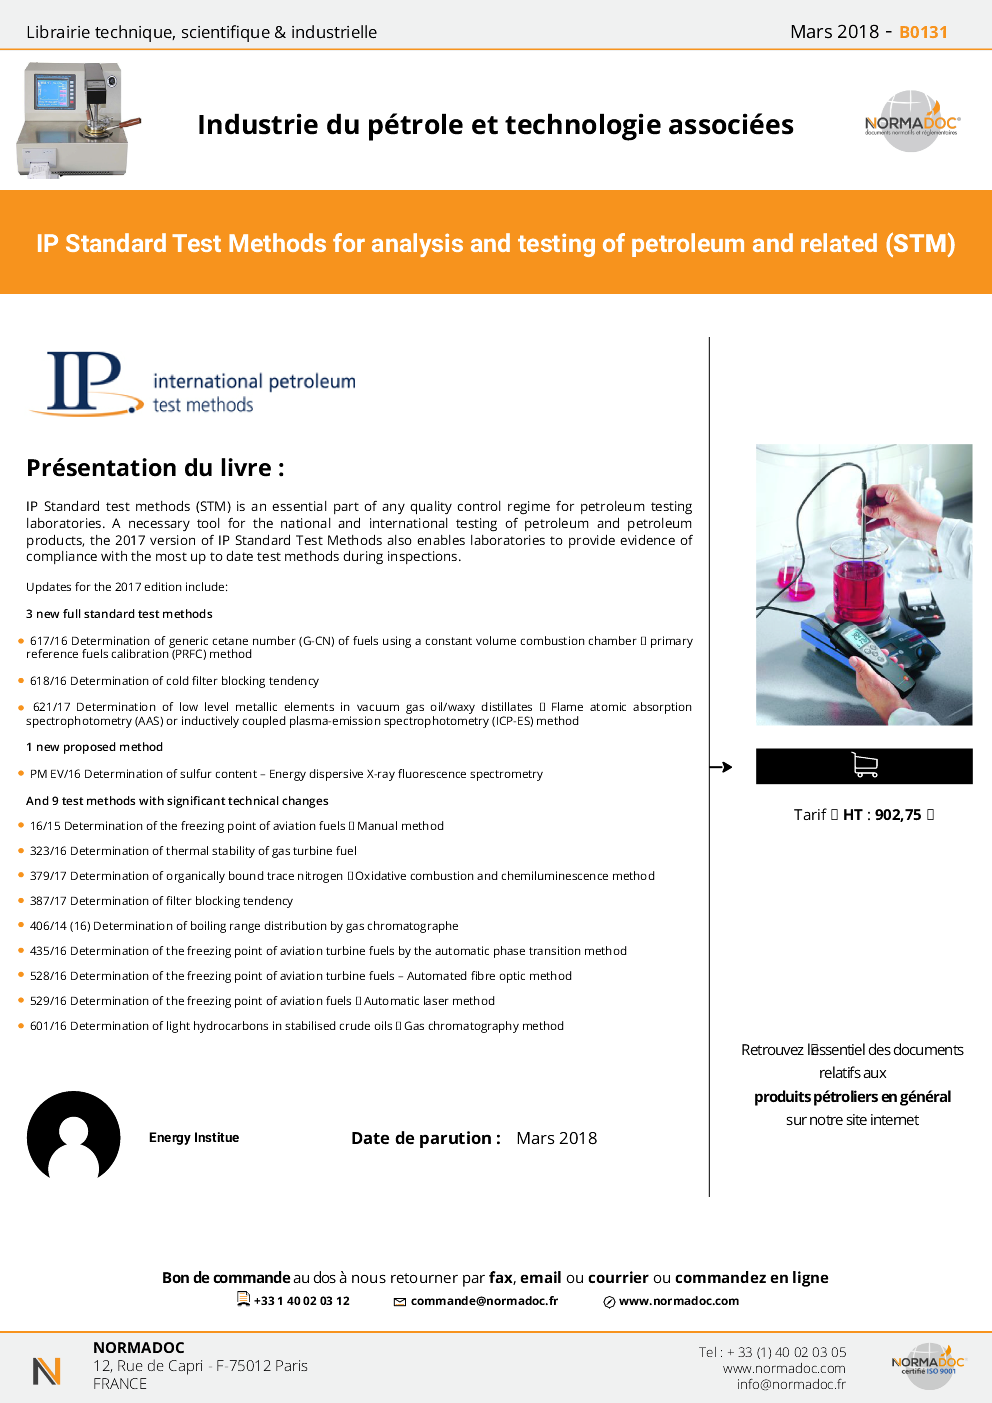 IP Standard test methods (STM) 2016